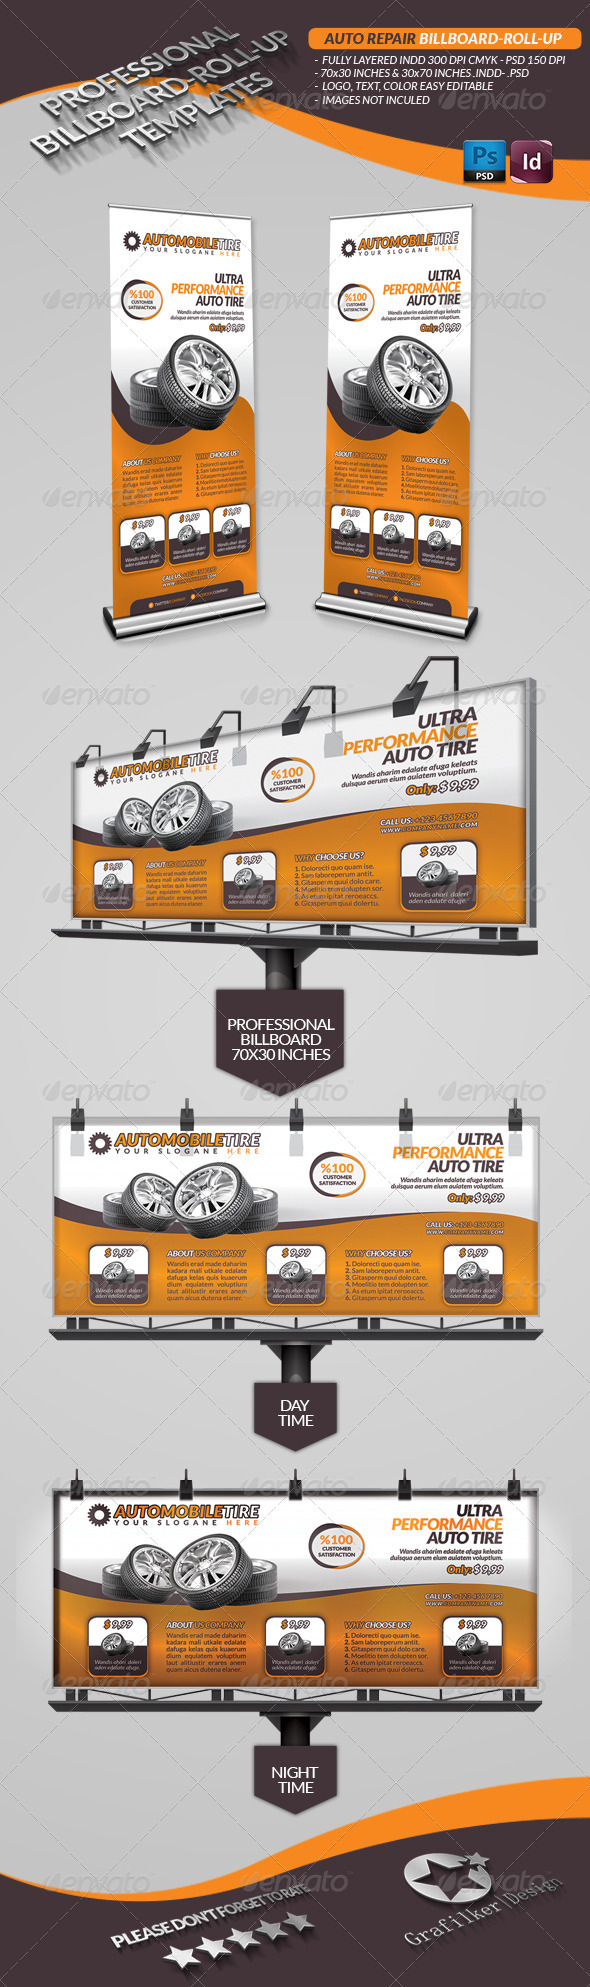 Automobile Repair Billboard - Signage Print Templates